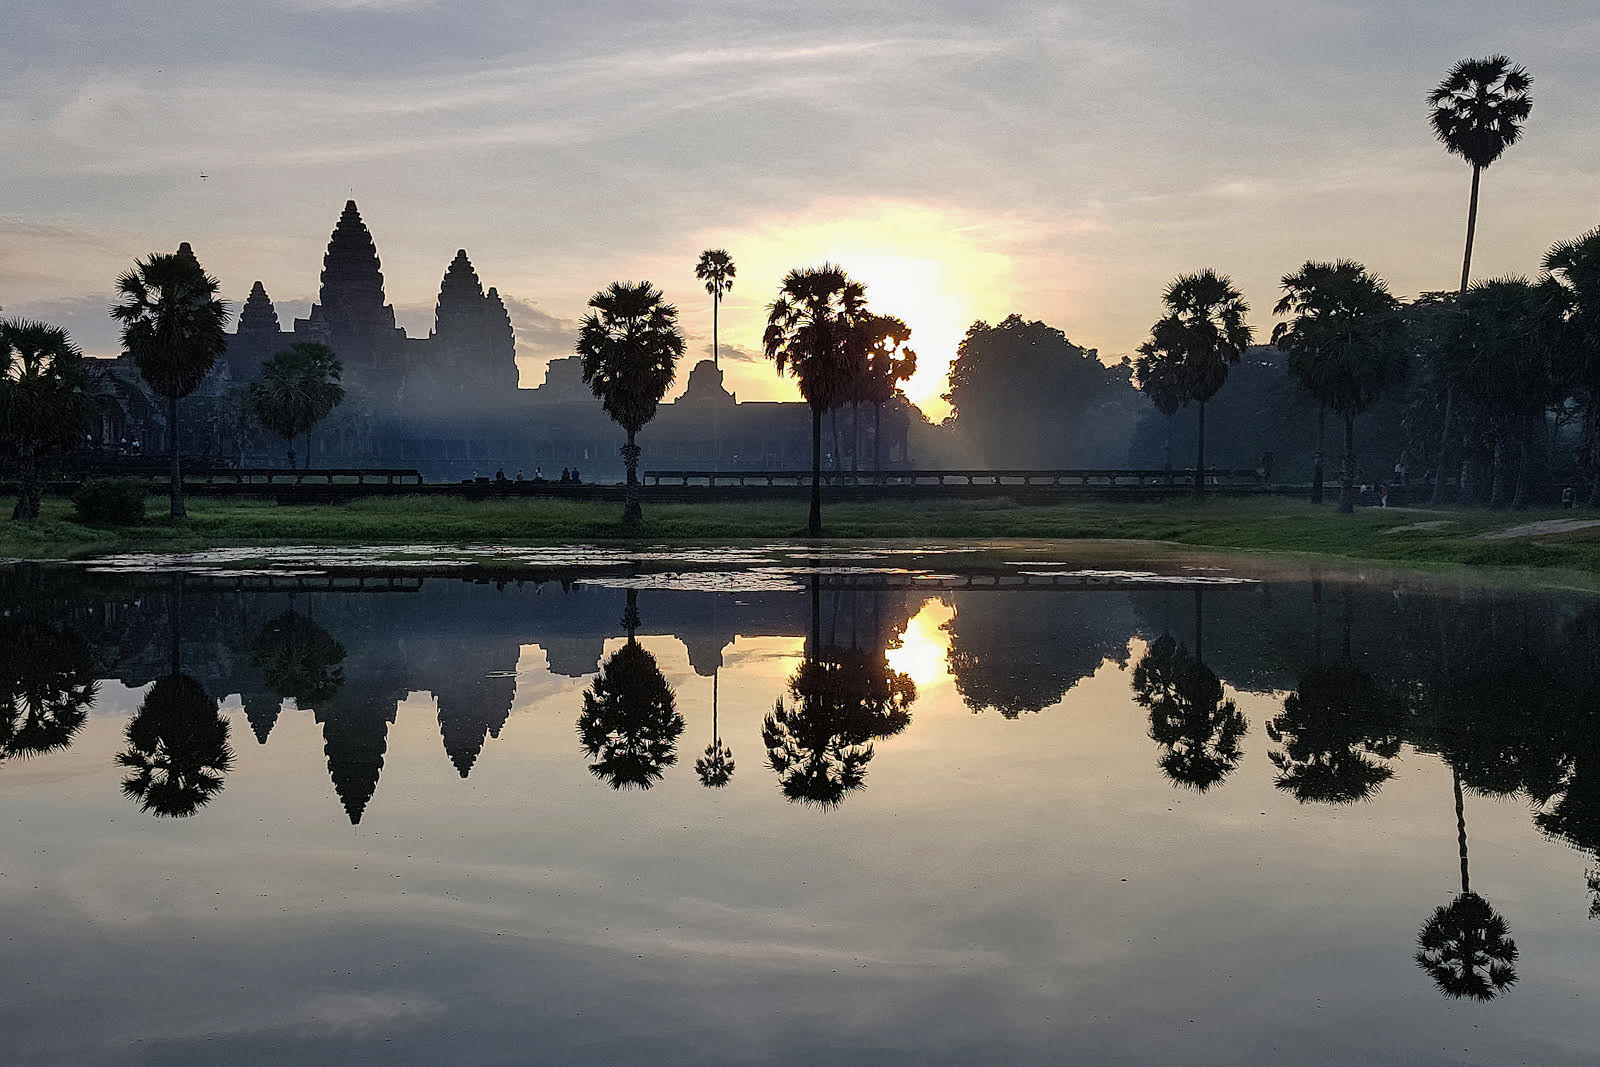 COLOUR - Sunset over Ankor Wat by Philip McKenna (5 marks)